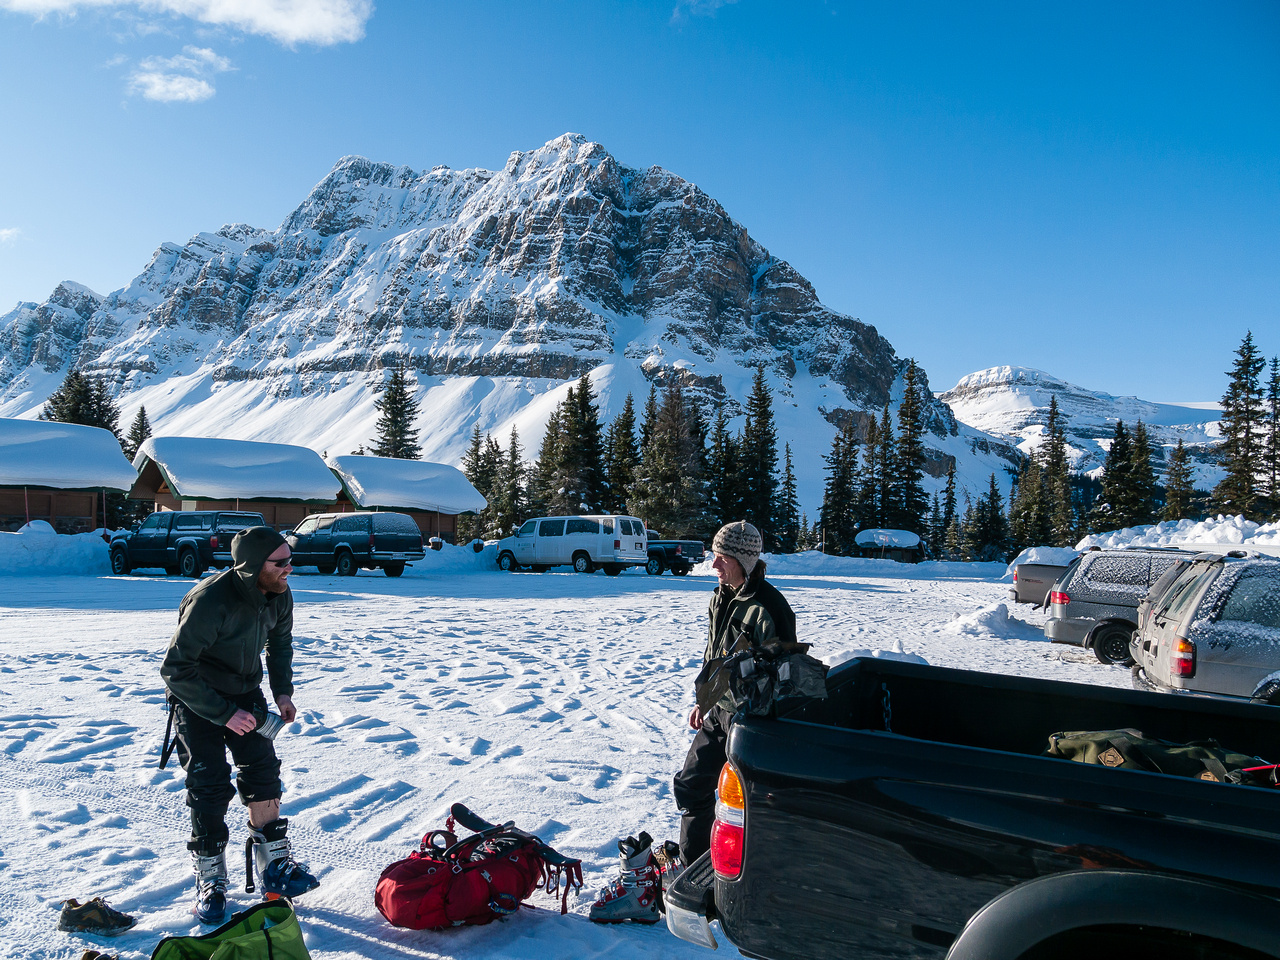 Nice in the Bow Lake parking lot - not so nice about 500 meters further across the lake!